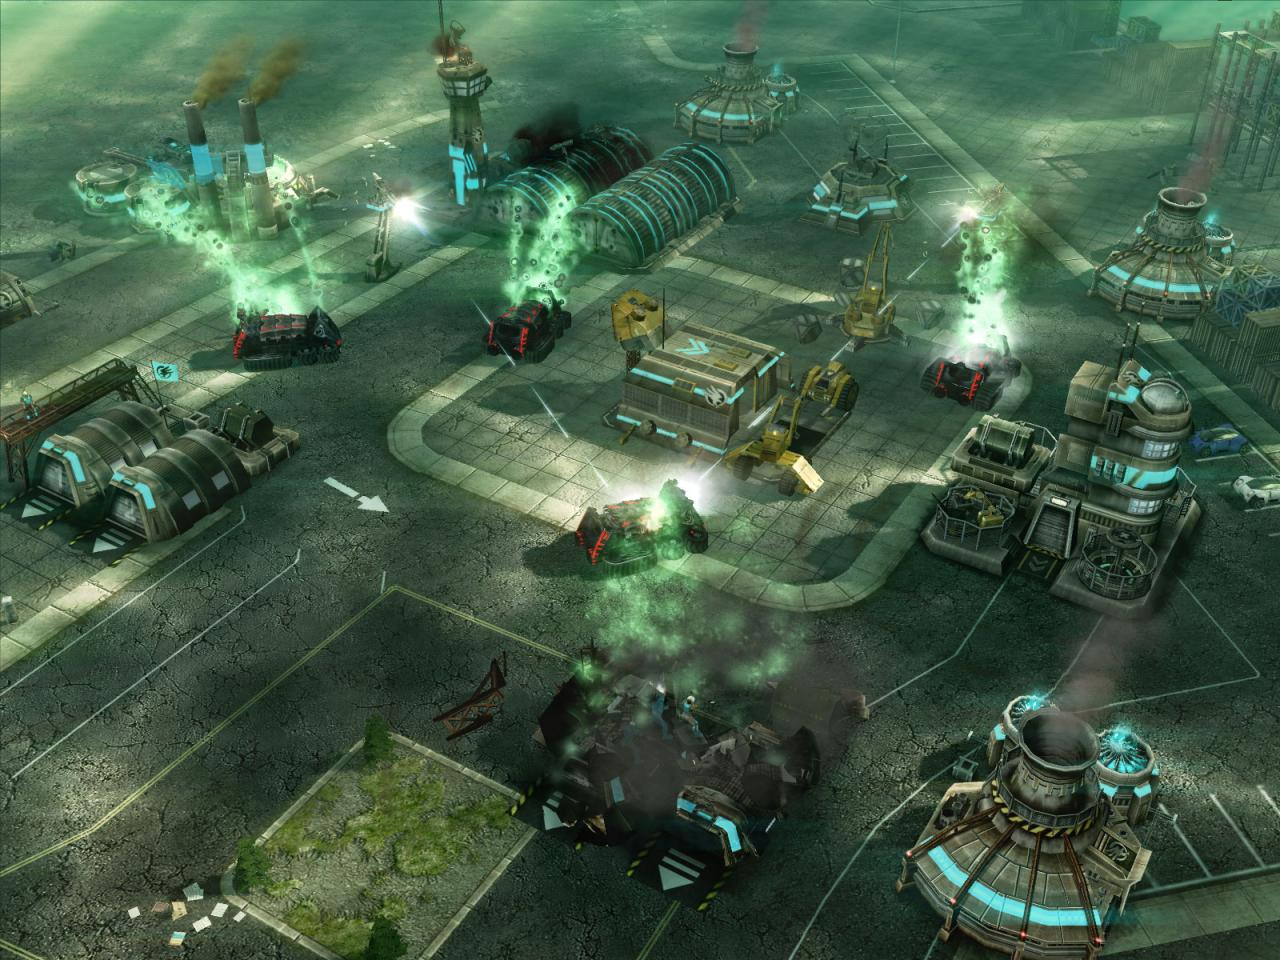 [27/02/08] Command &amp; Conquer 3 Kanes Rache - Unterfraktion der Nod: Tiberium Trooper<br>